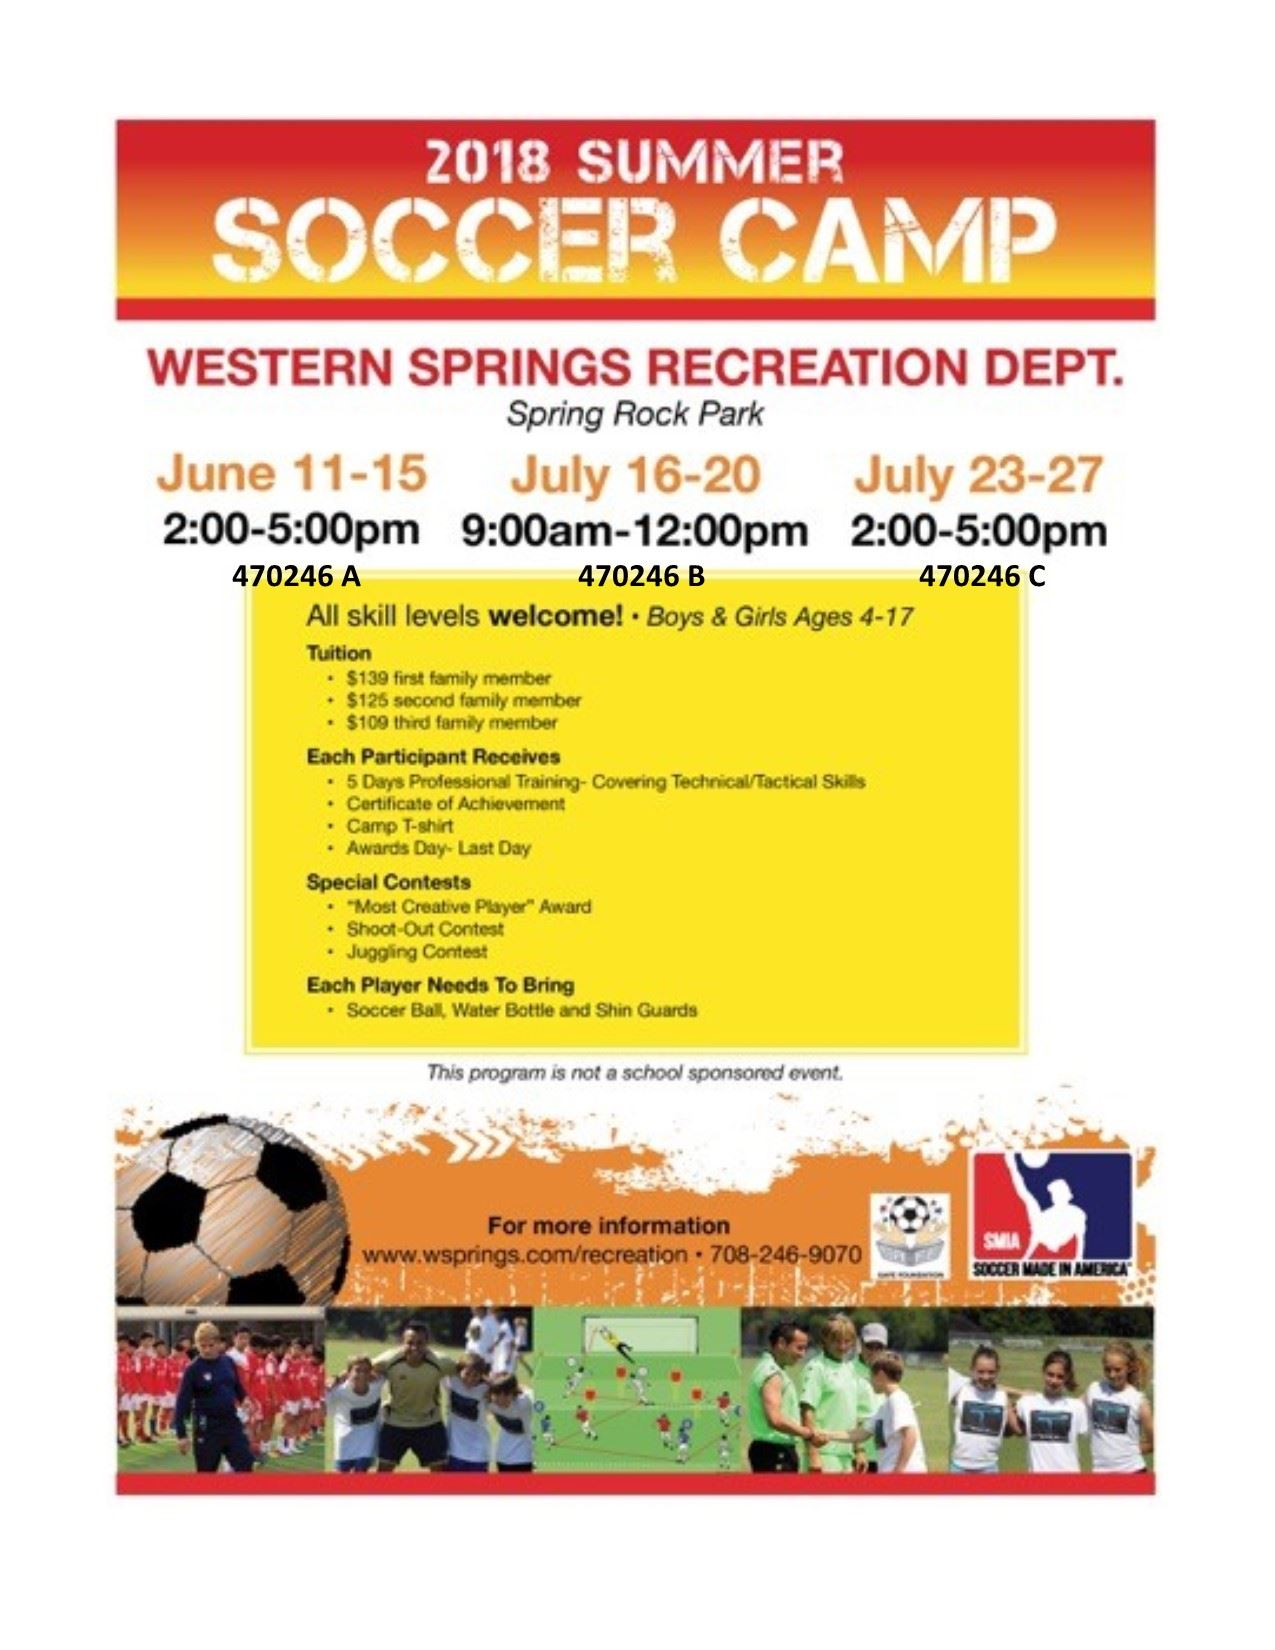 2018 SOCCER TRAINING CAMP